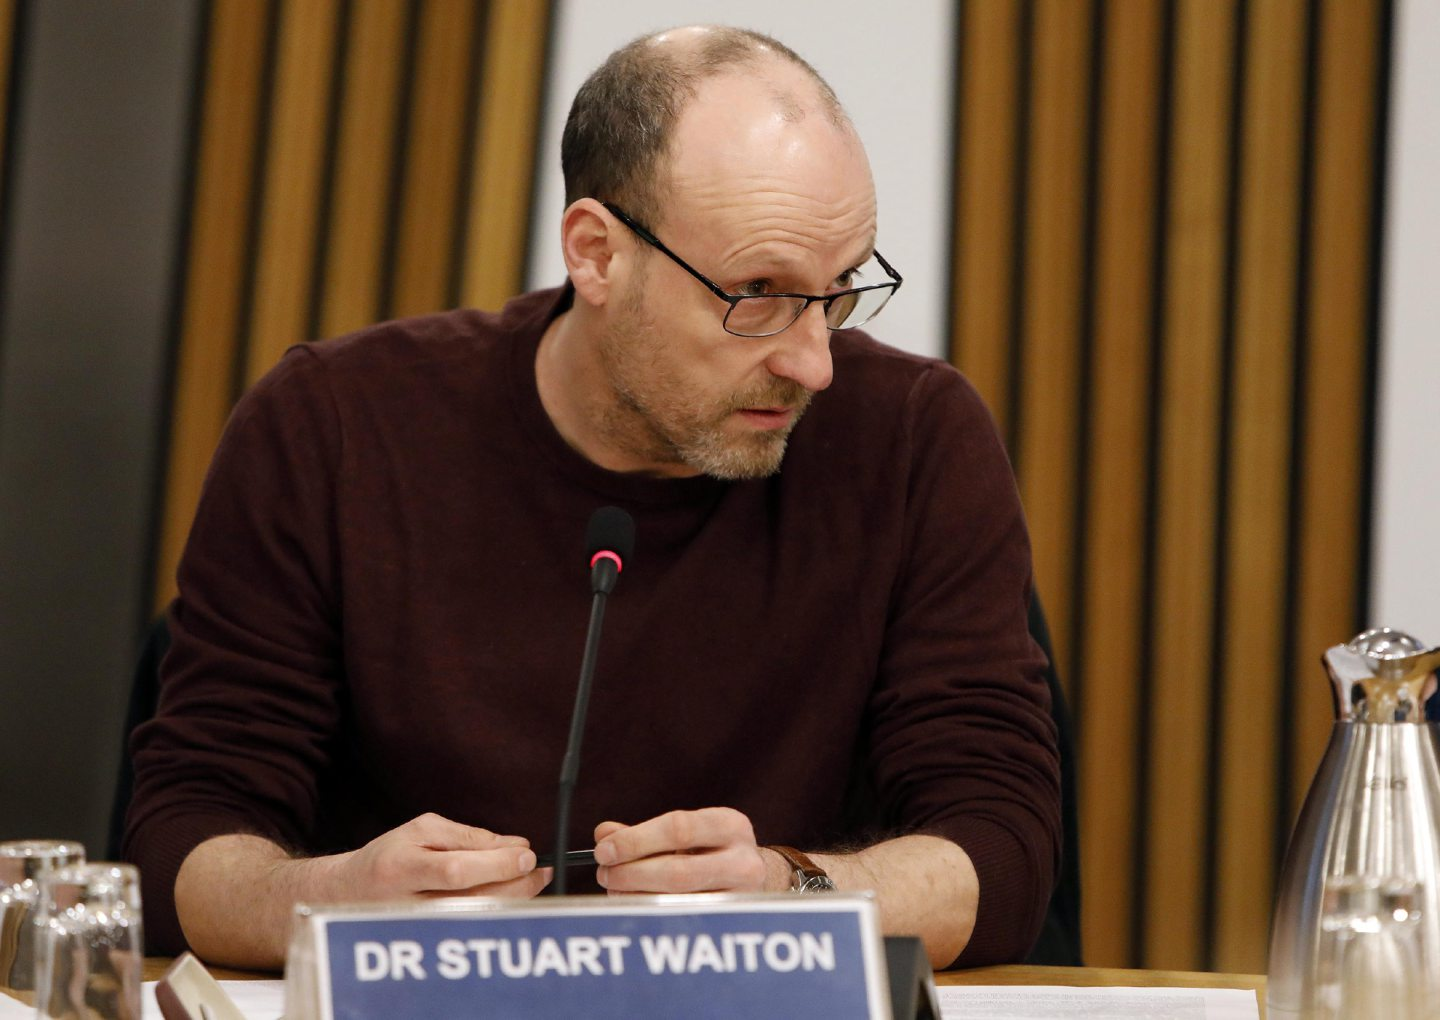 Dr Stuart Waiton has criticised the government's 'stay at home' mantra